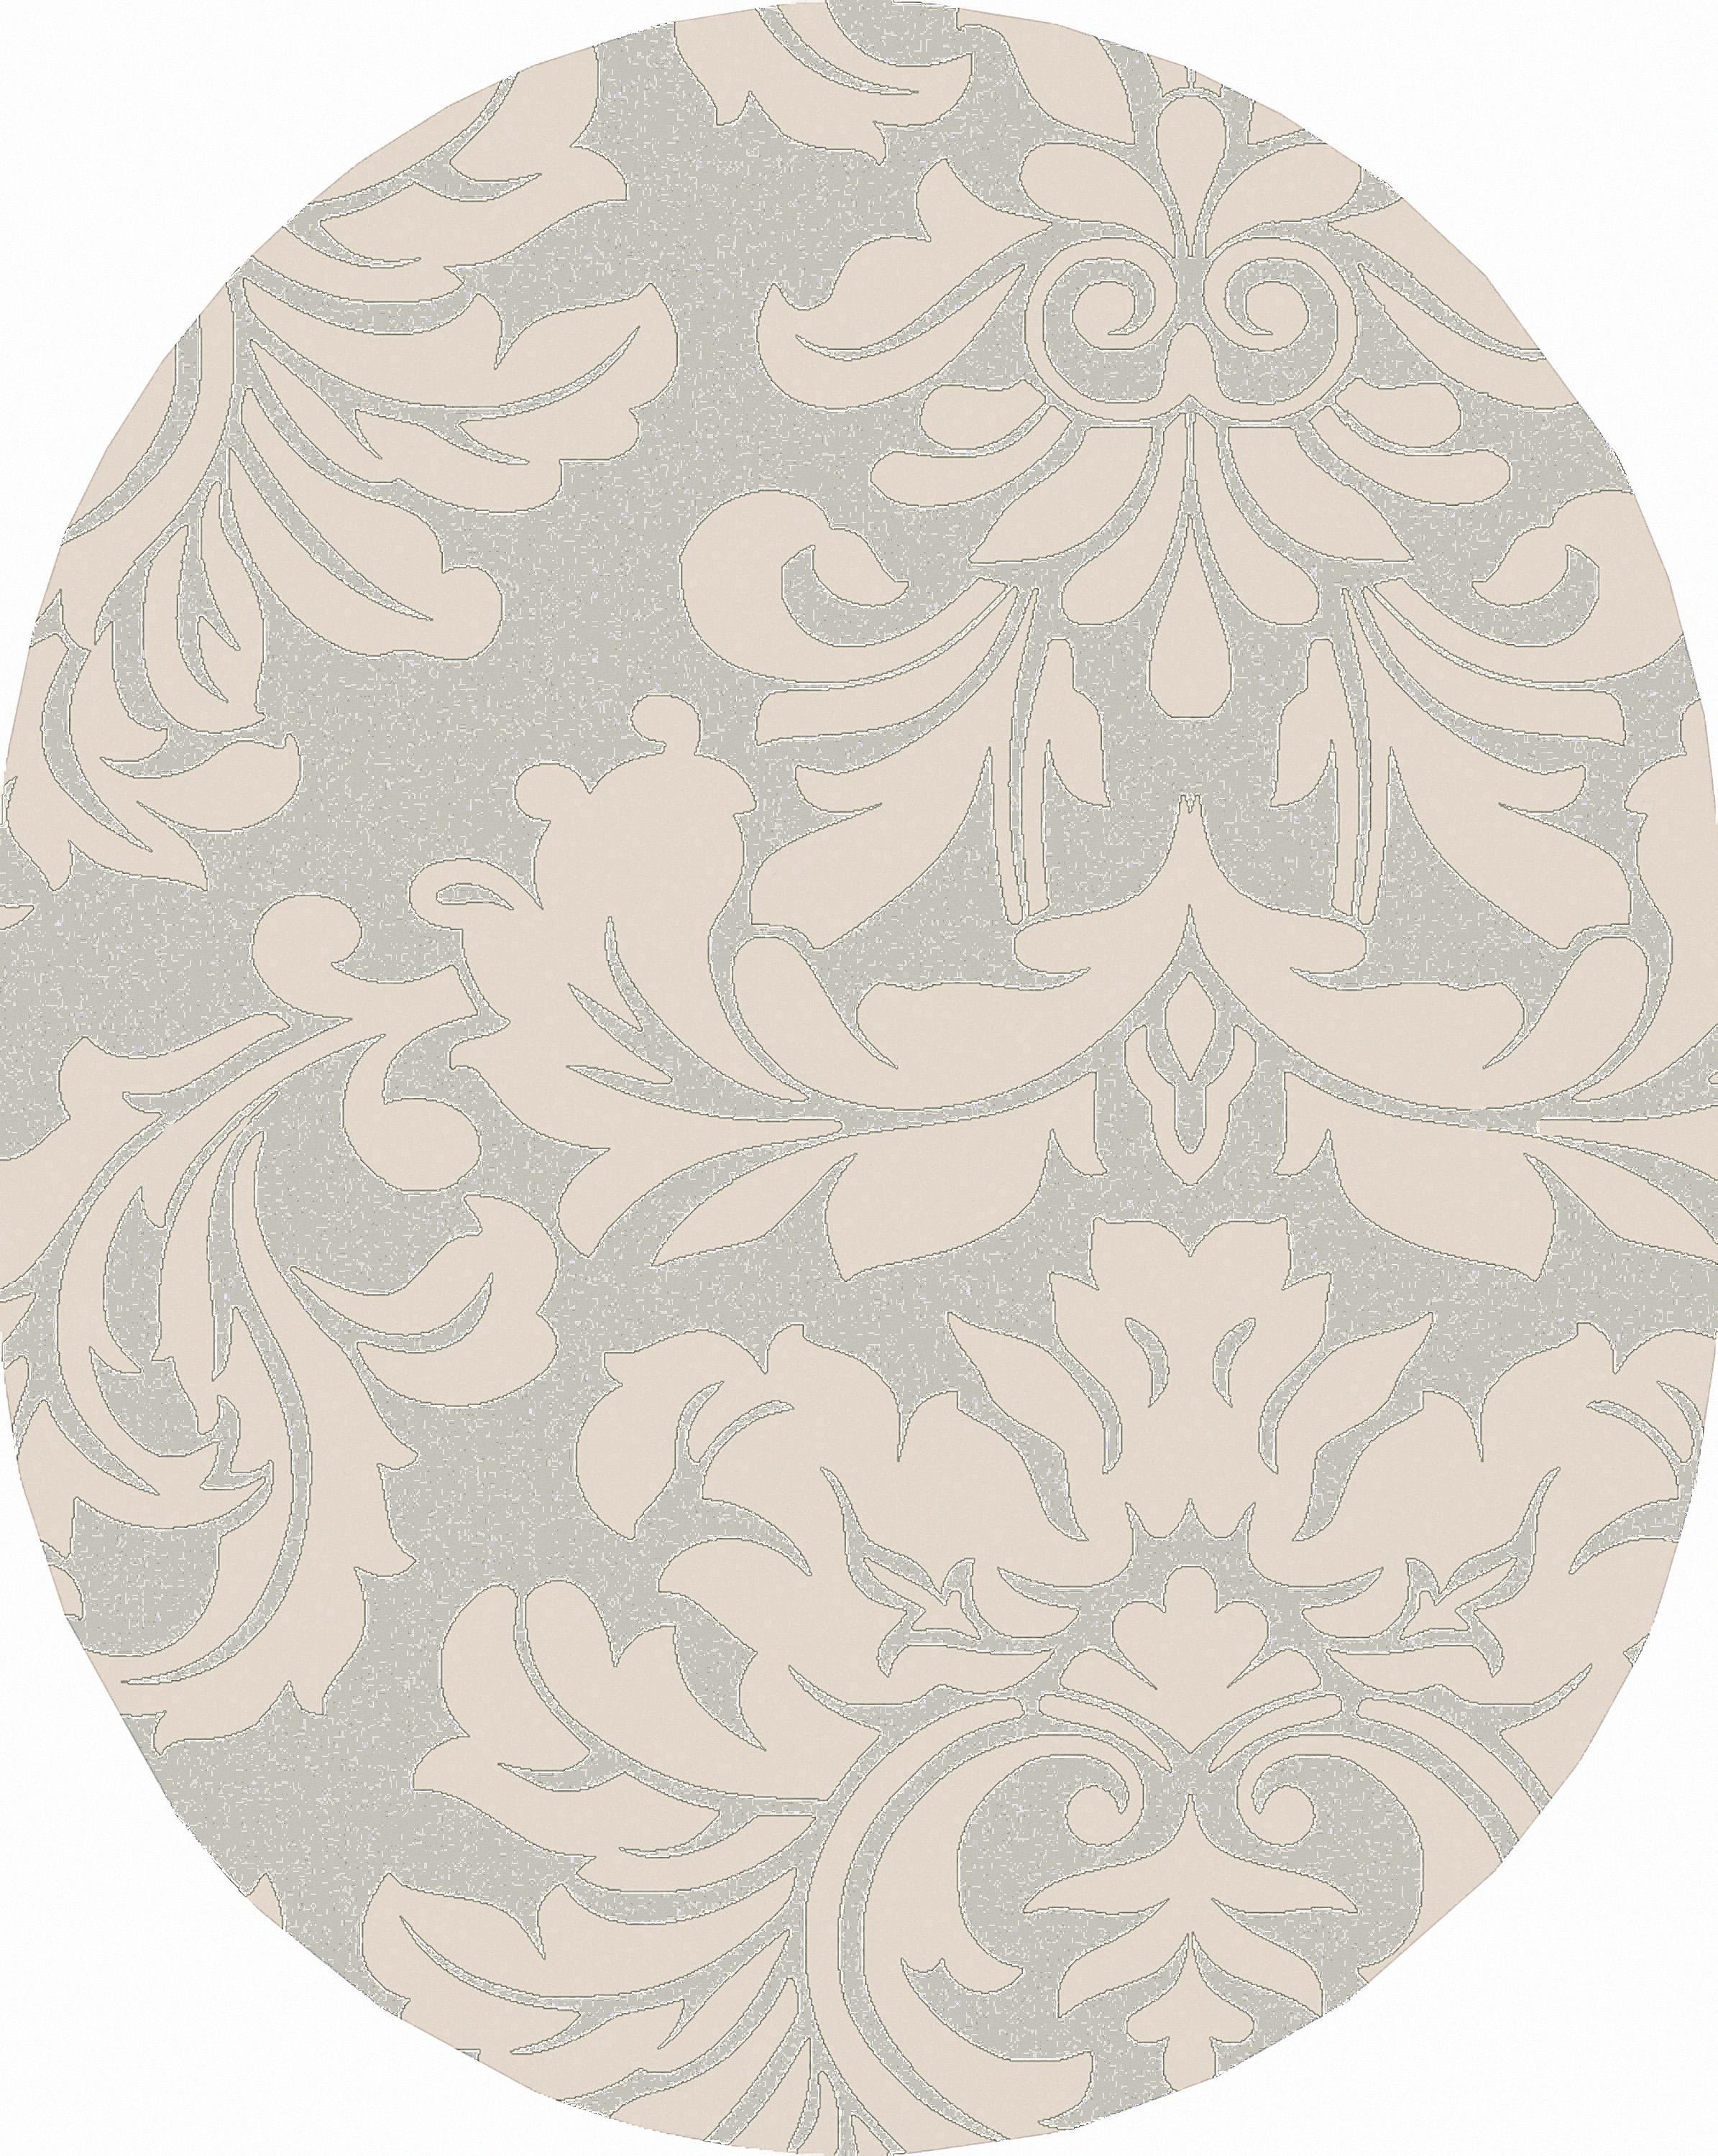 Athena 8' x 10' Oval by Surya at Wayside Furniture